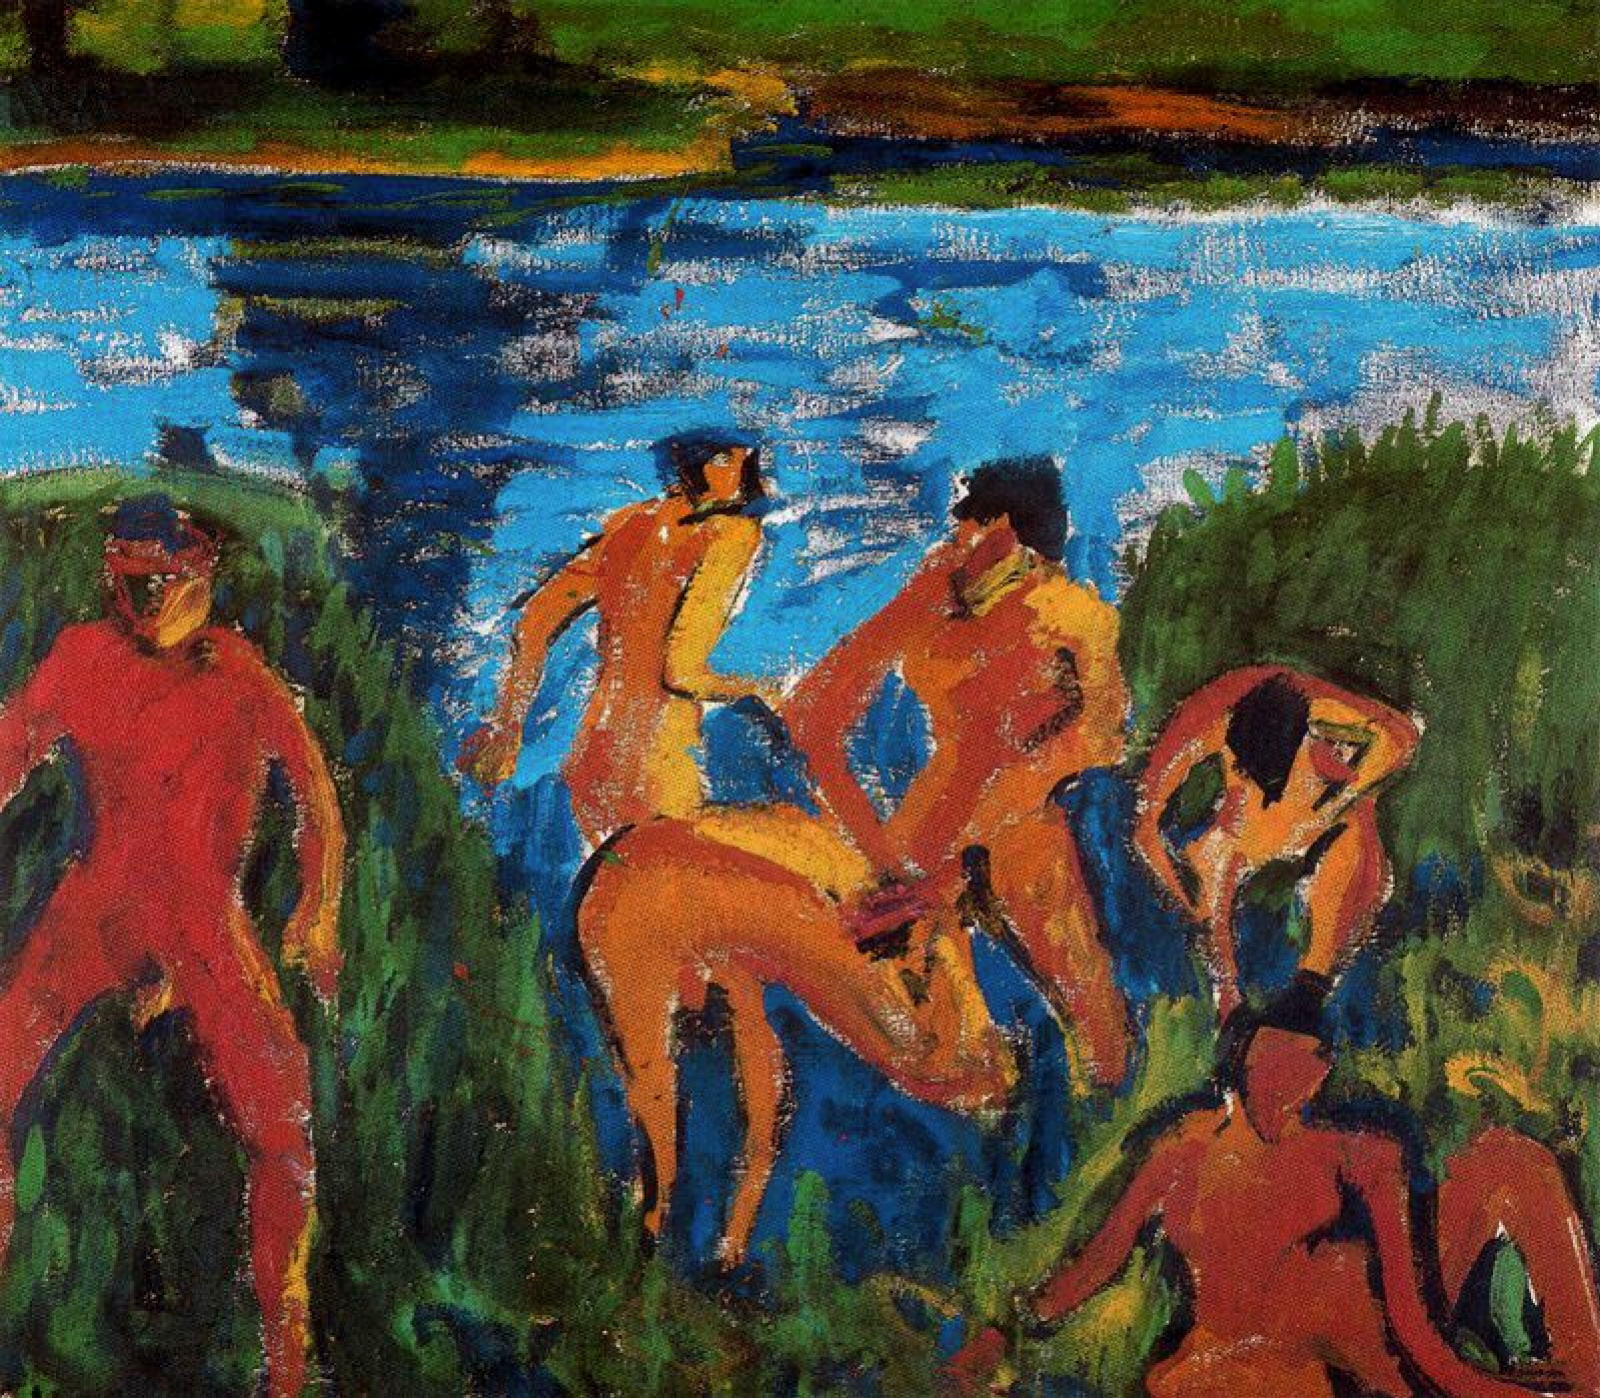 Erich Heckel. Bathers among the reeds